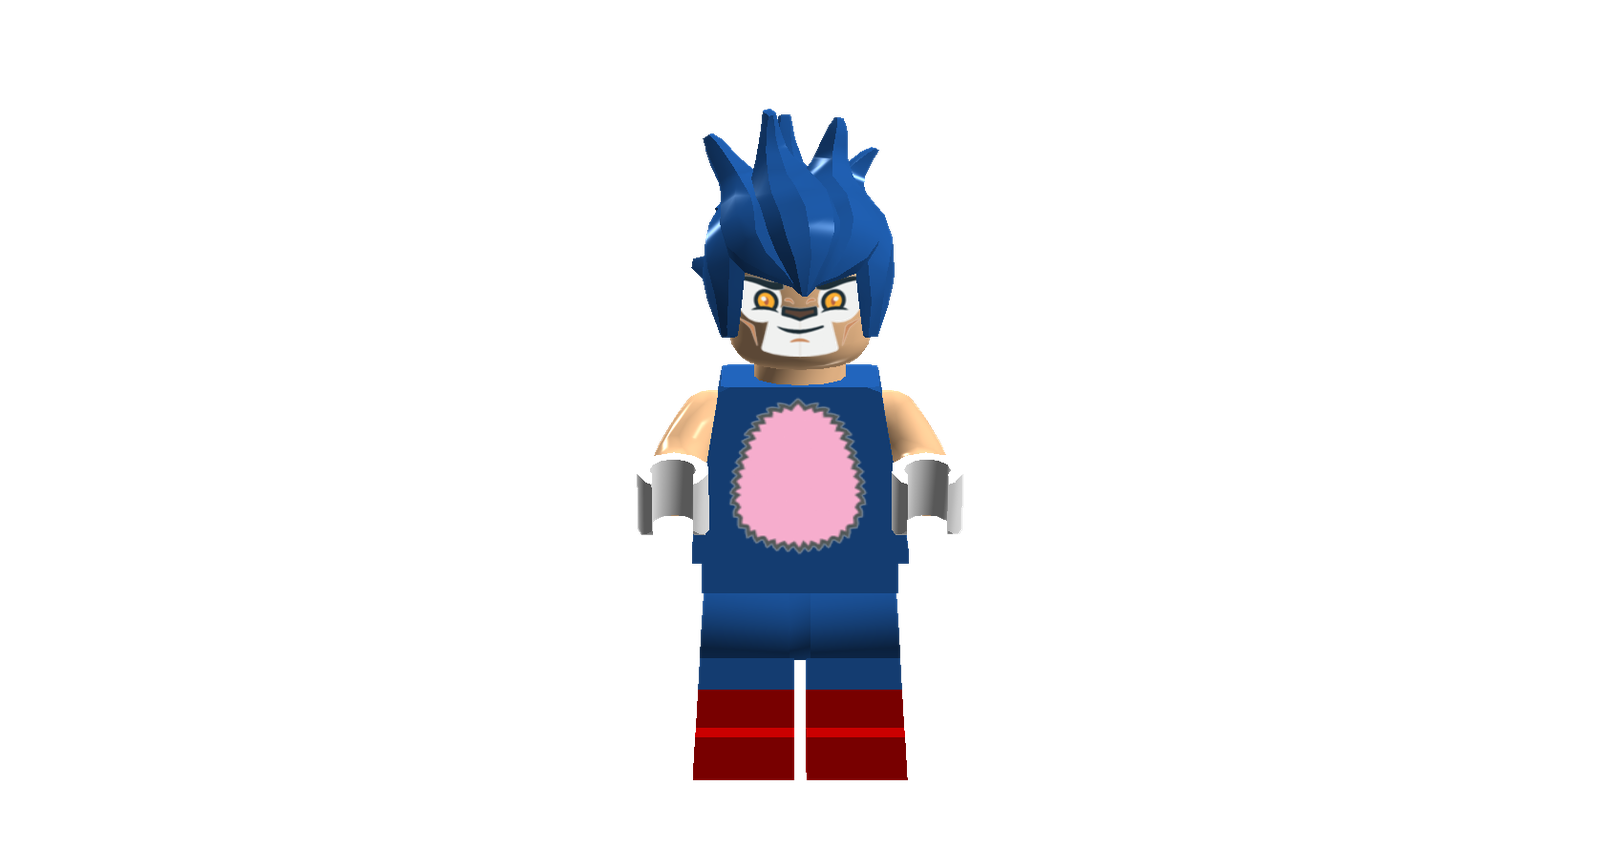 Sonic death egg robot png. Lego ideas product